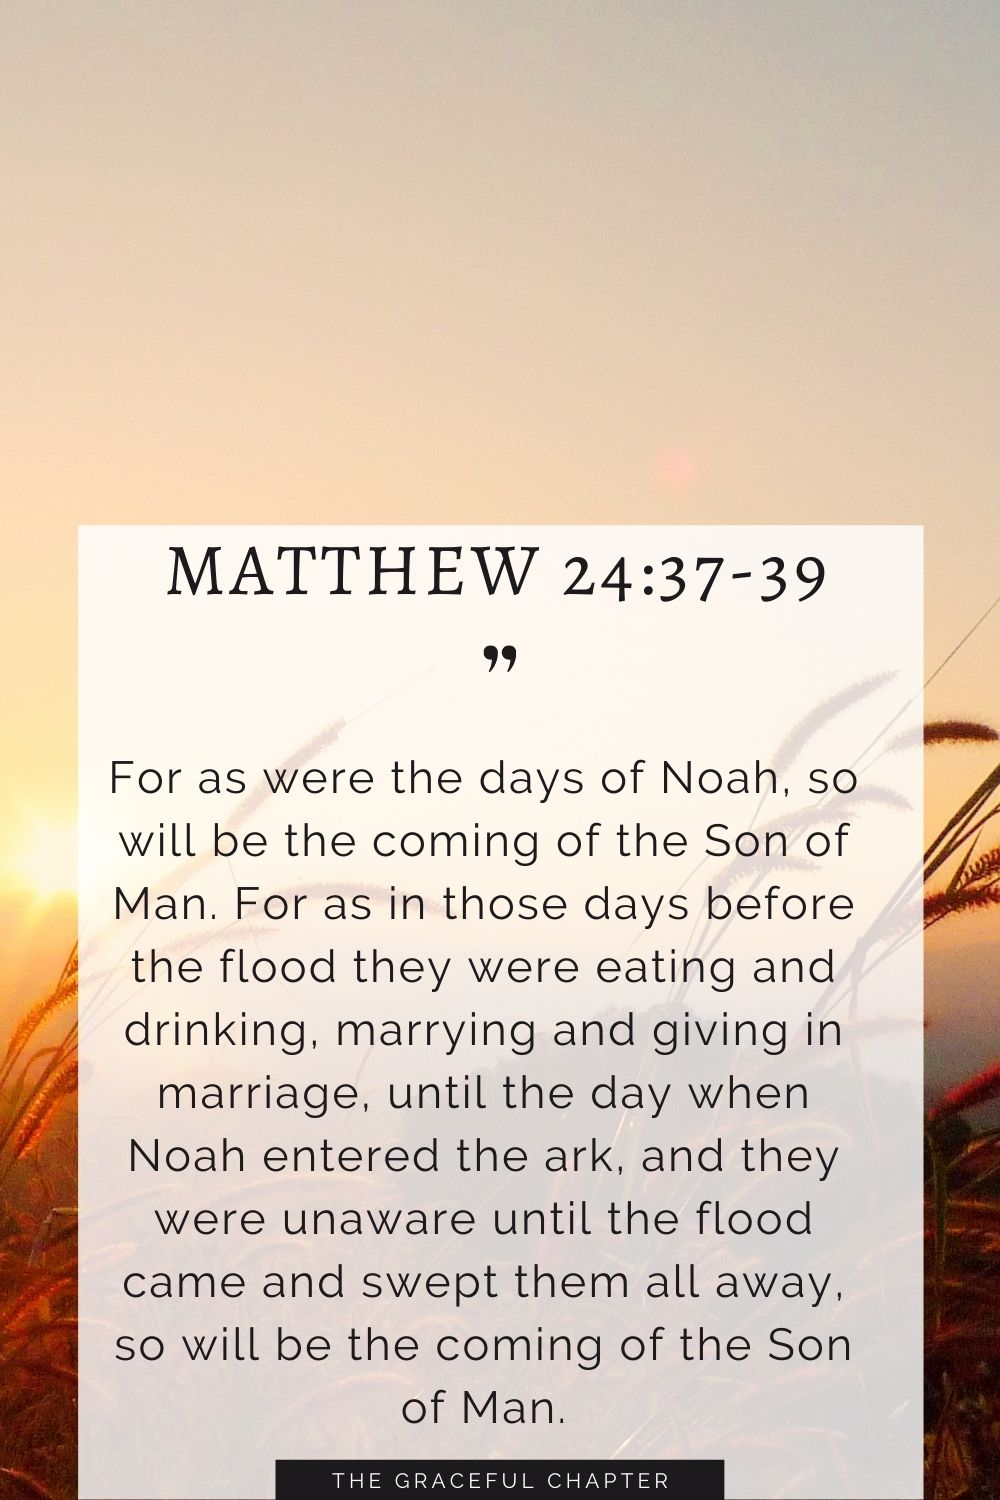 For as were the days of Noah, so will be the coming of the Son of Man. For as in those days before the flood they were eating and drinking, marrying and giving in marriage, until the day when Noah entered the ark, and they were unaware until the flood came and swept them all away, so will be the coming of the Son of Man. Matthew 24:37-39